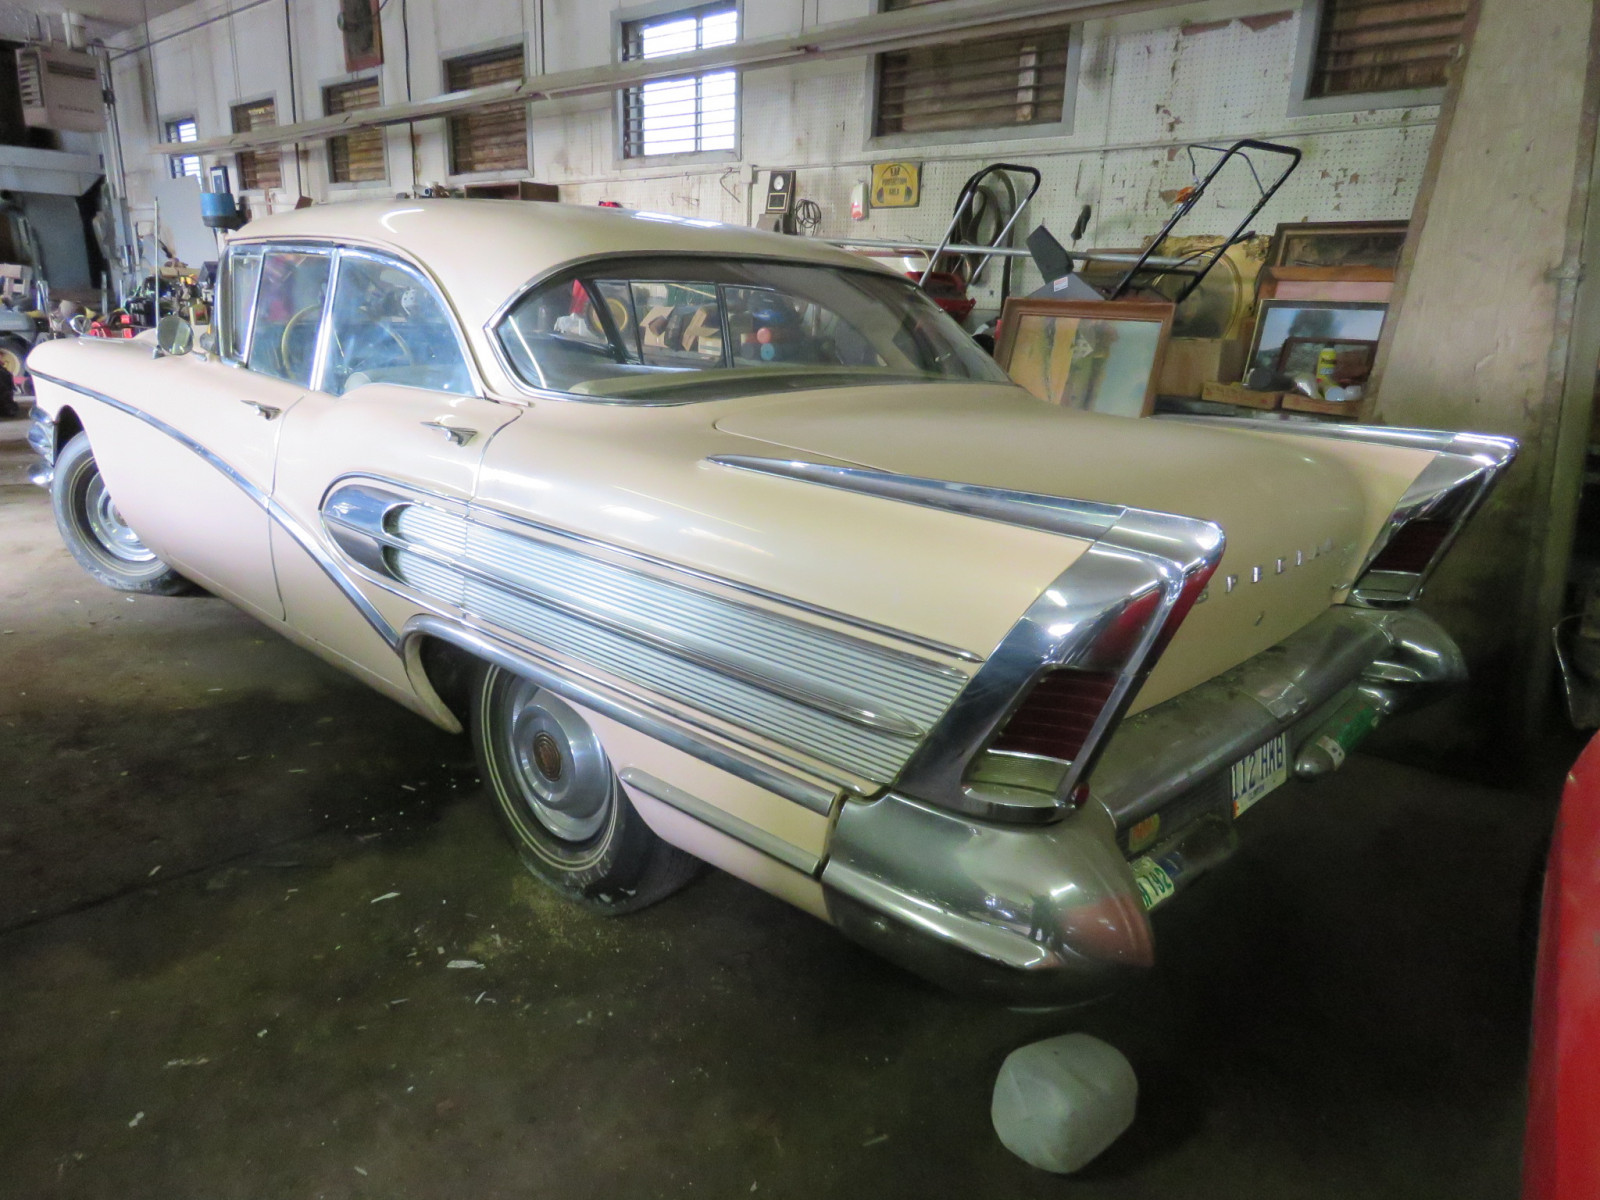 1958 Buick Special 4dr HT - Image 4